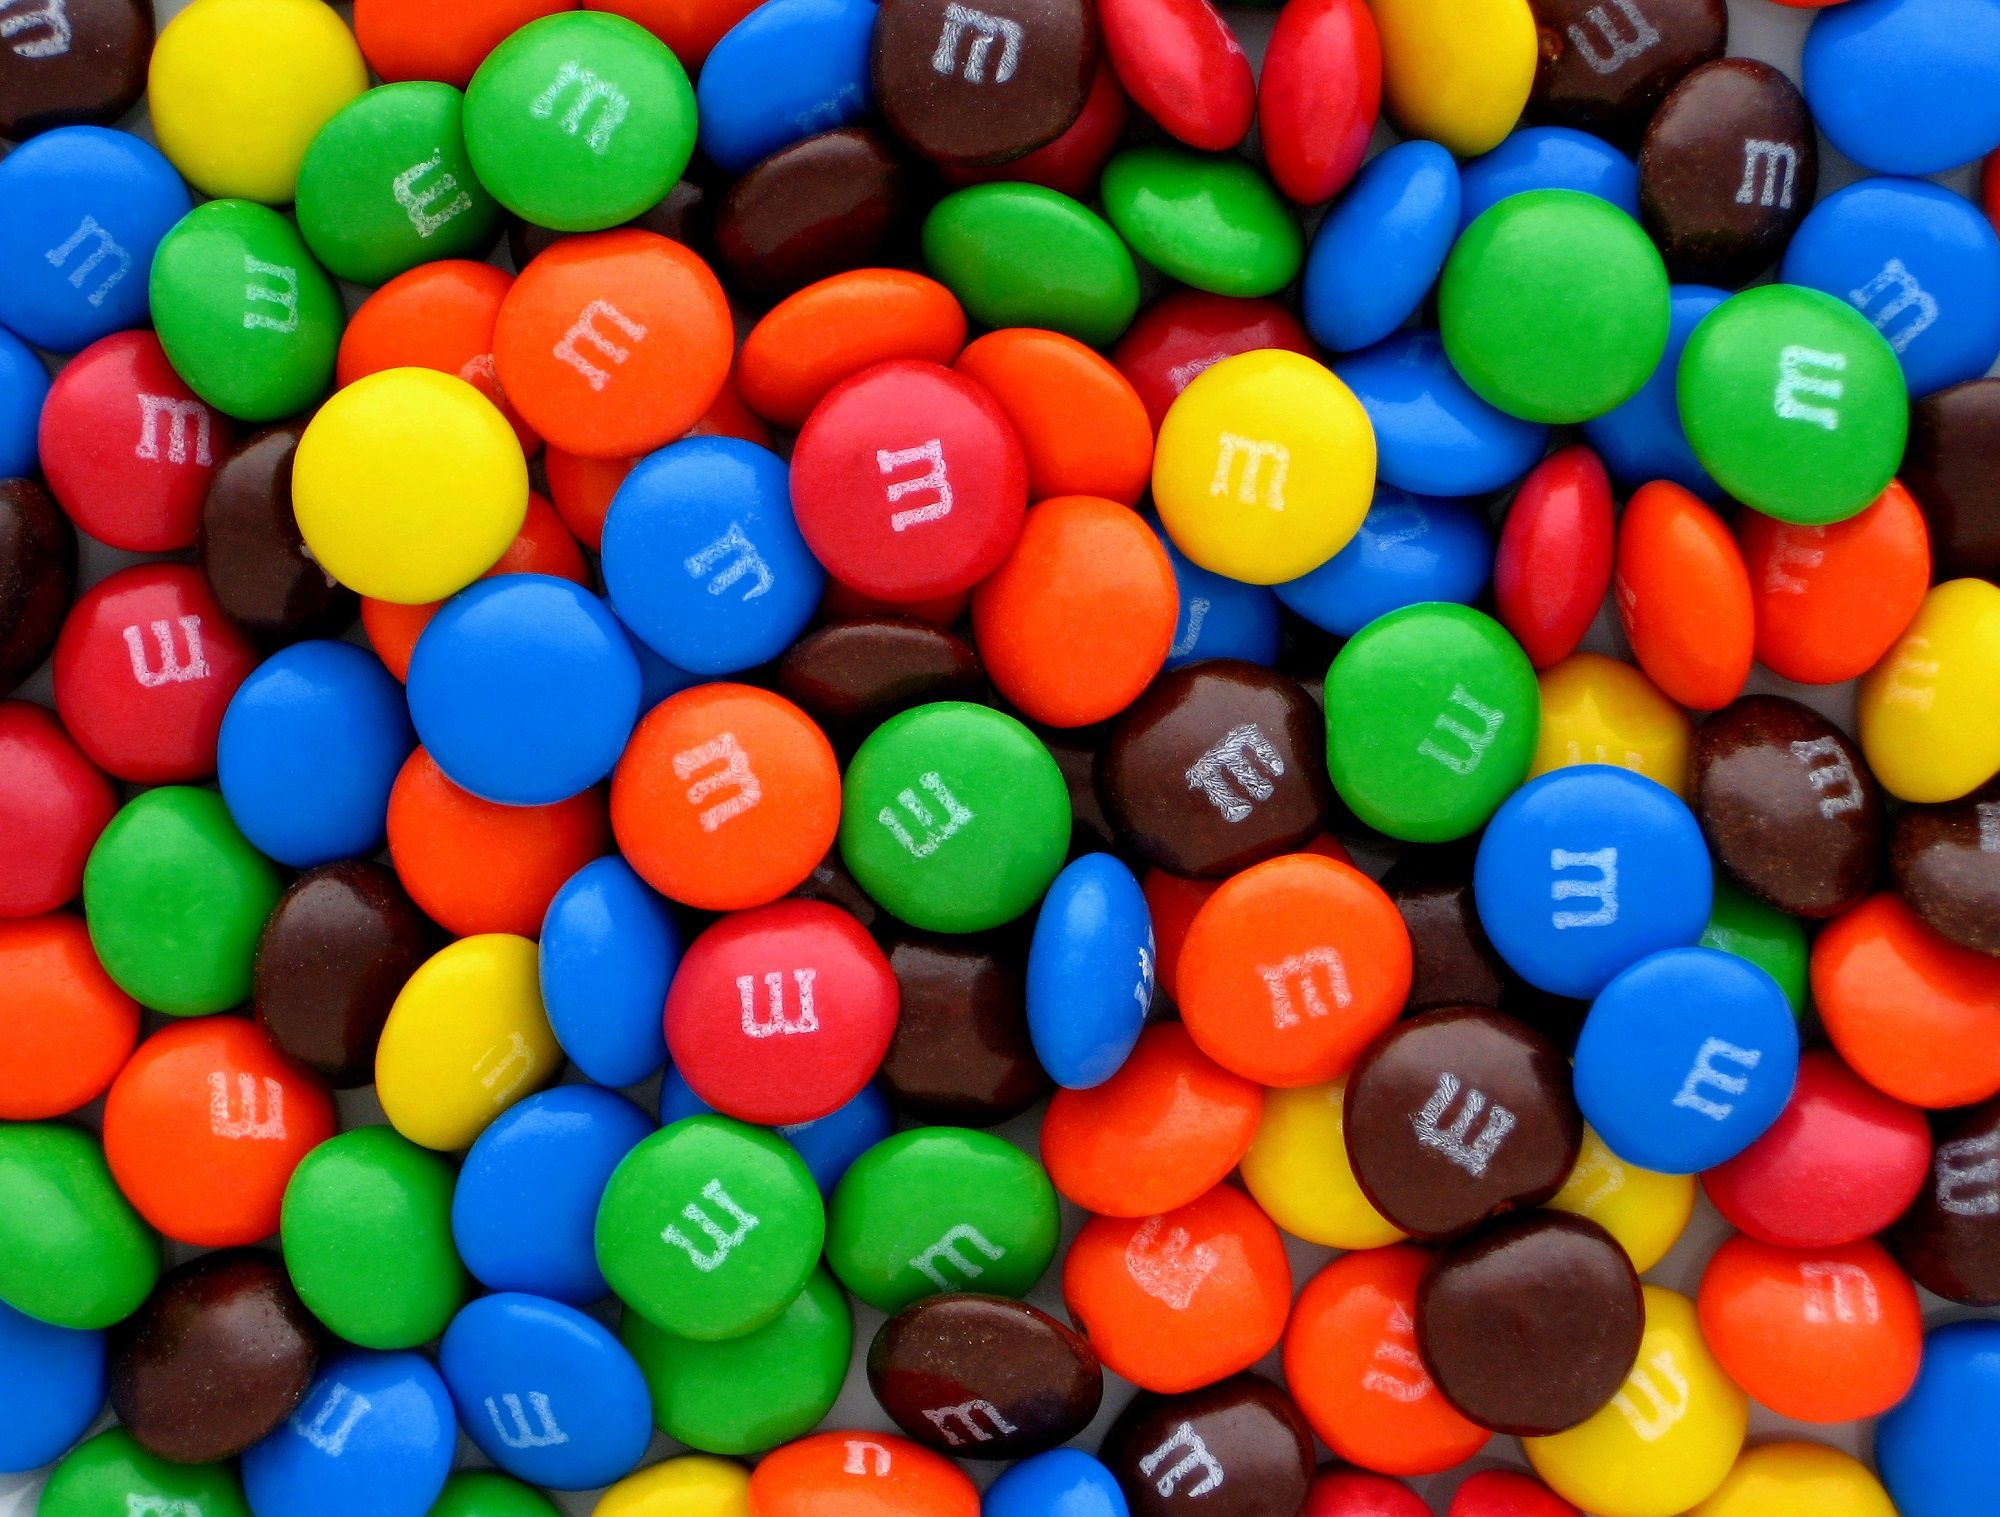 """10. What the M's in """"M&M's"""" Represent"""